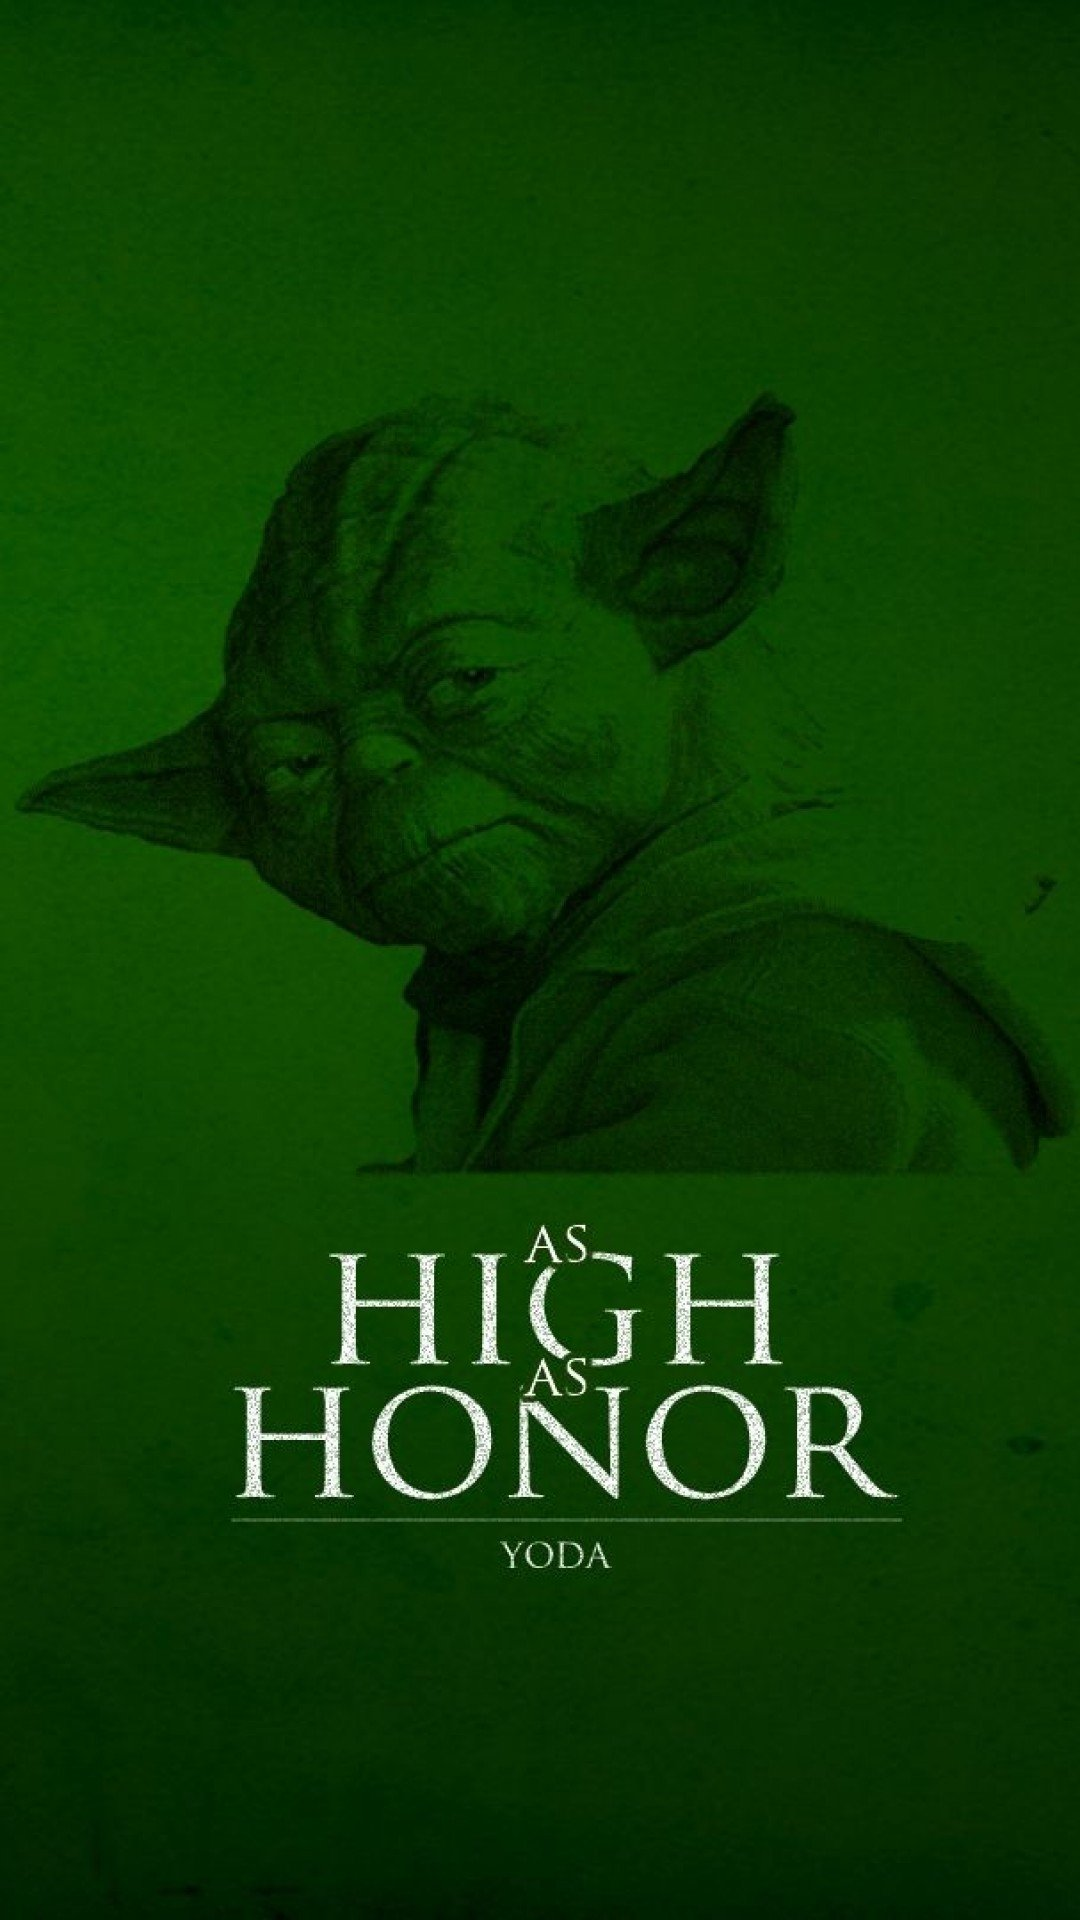 Yoda IPhone Wallpapers The Art Mad Wallpapers 1080x1920